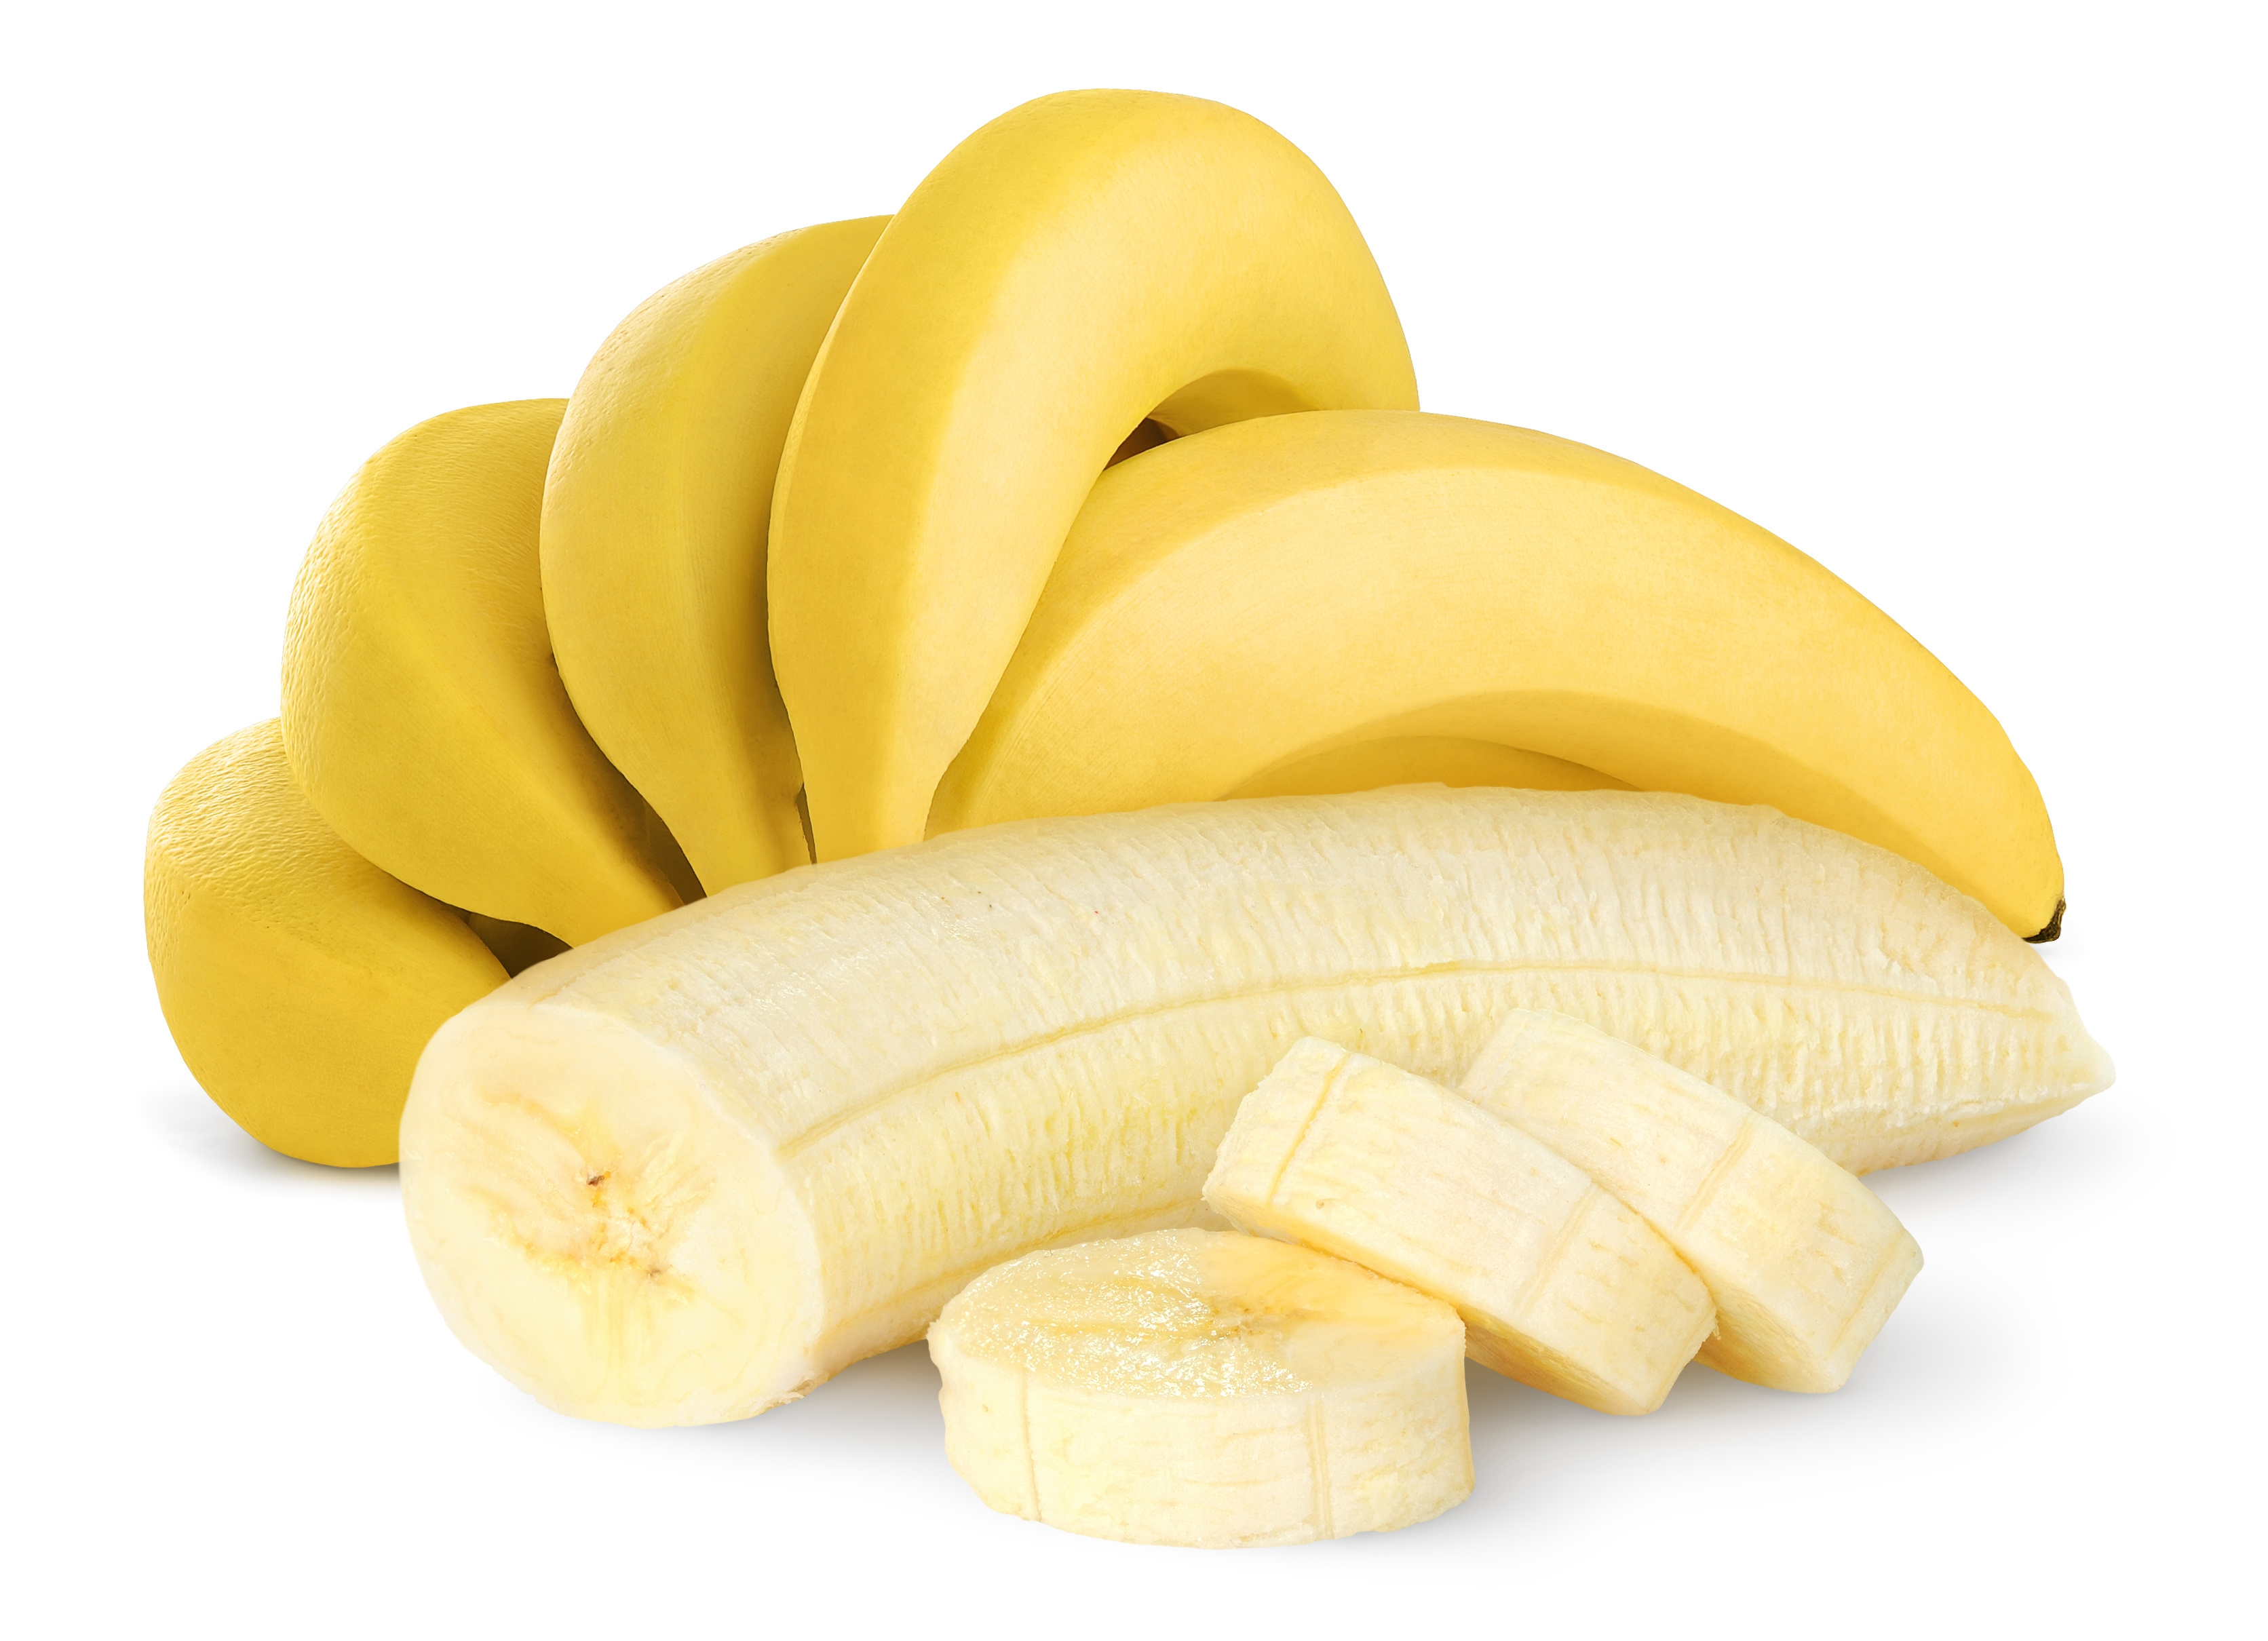 Fruits hd images - Banana Hd Background